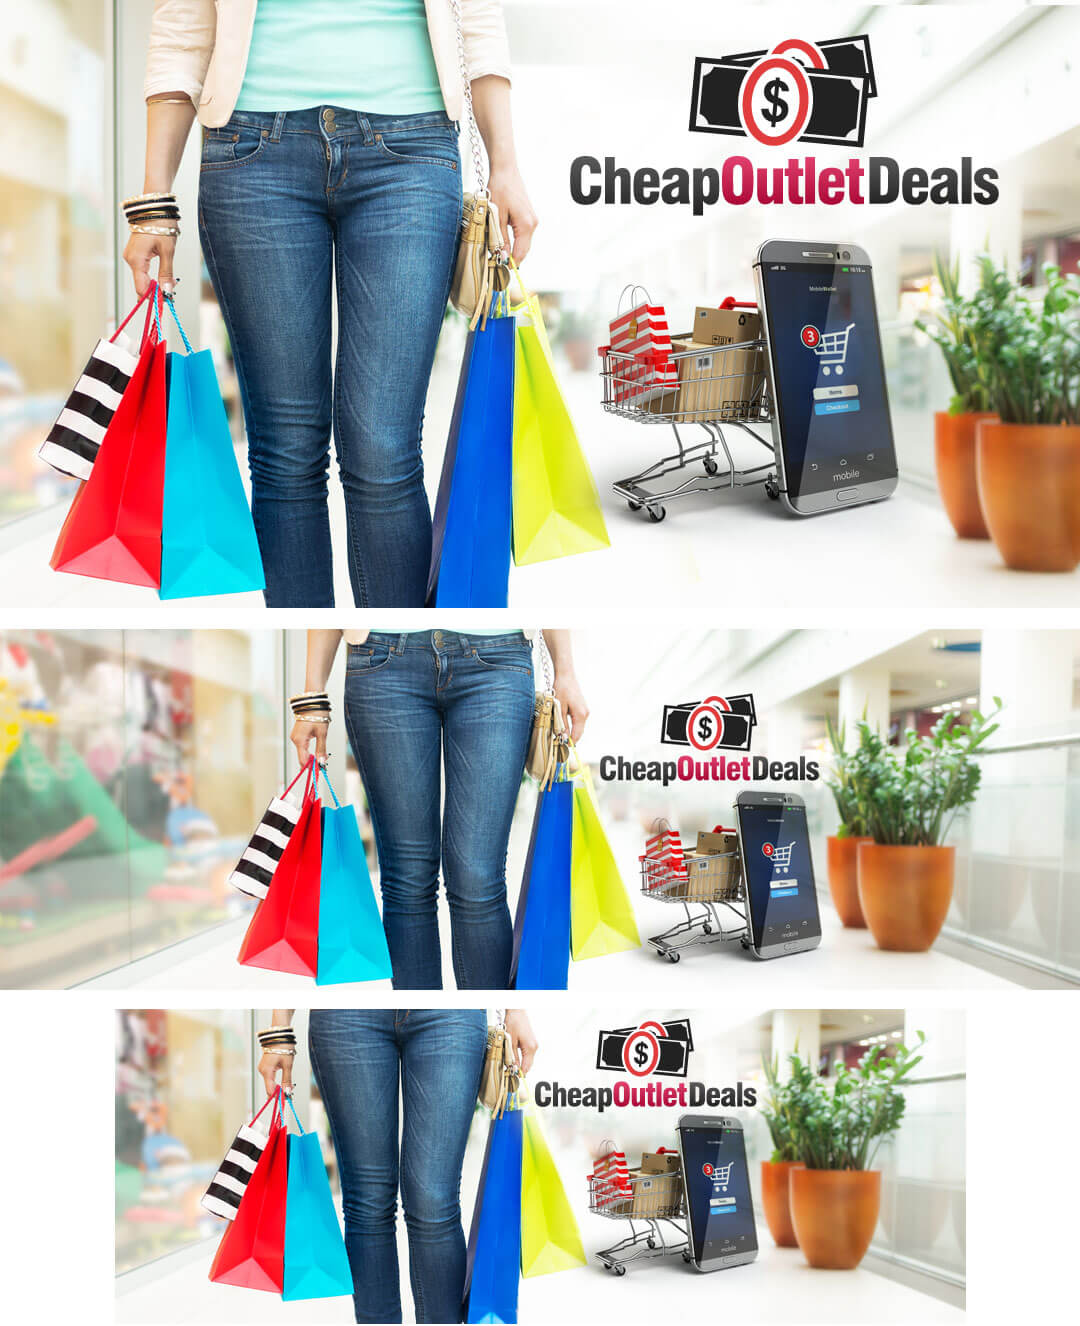 cheapoutletdeals social media package example